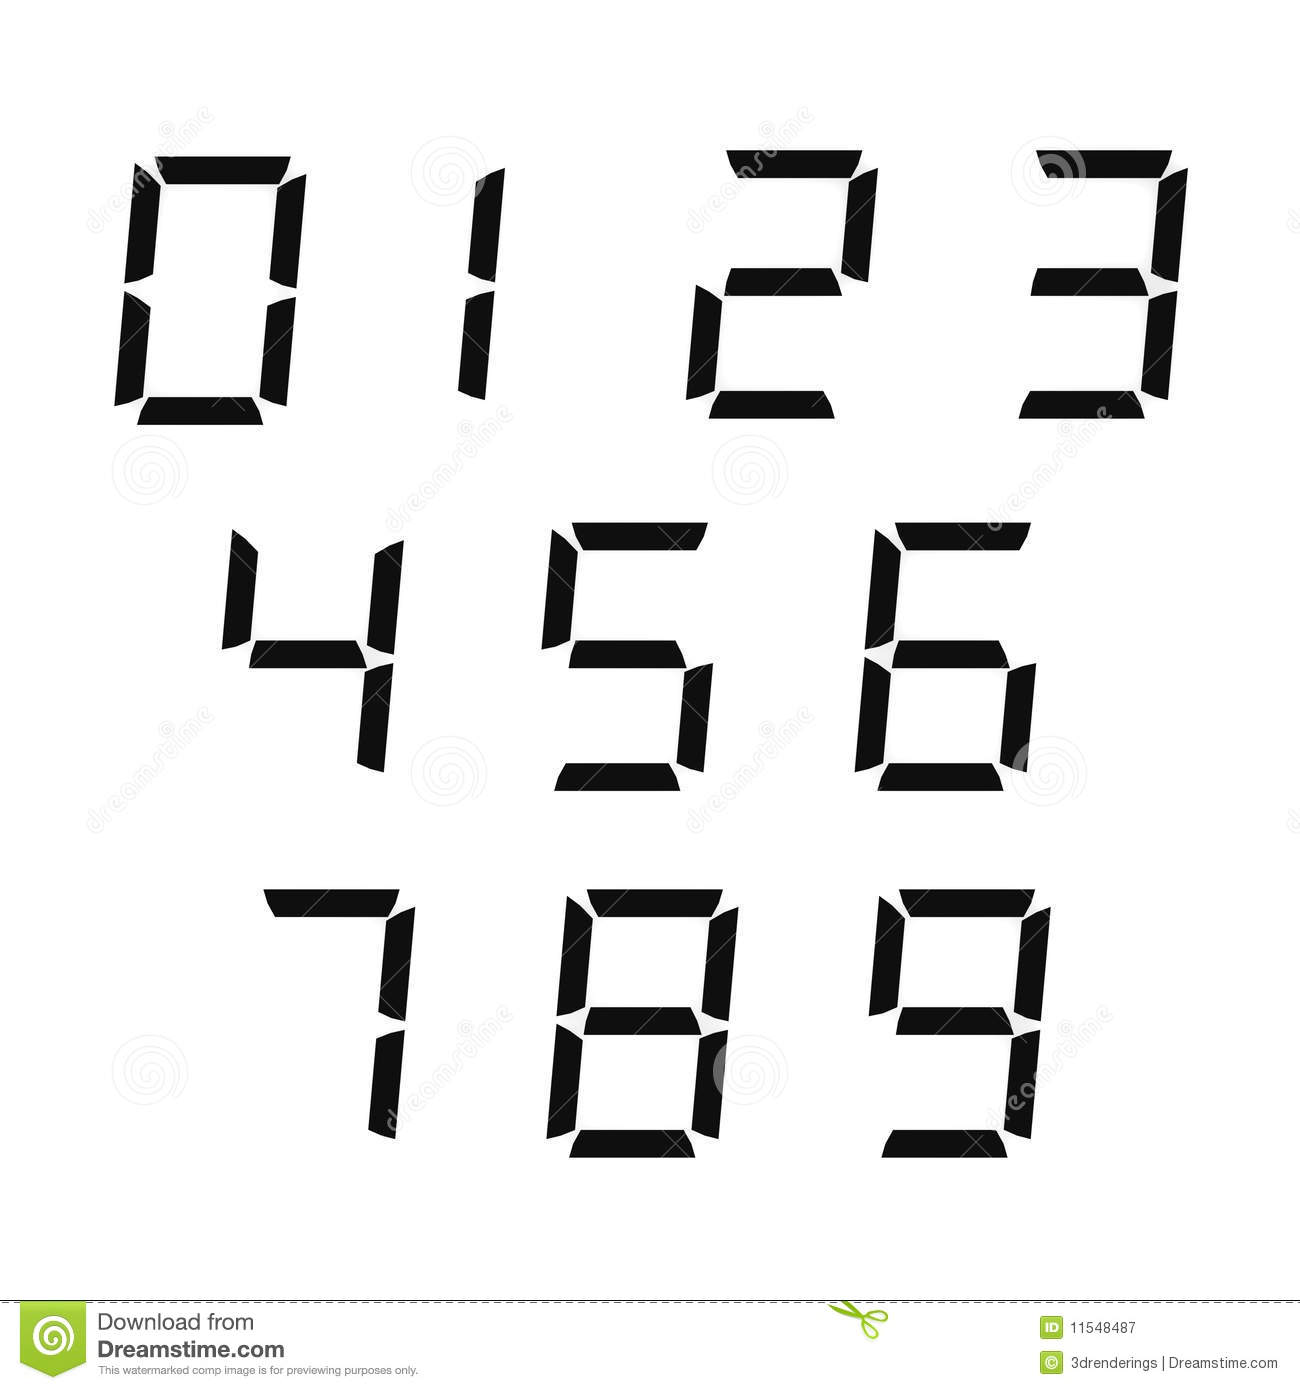 Digital Numbers Royalty Free Stock Photography